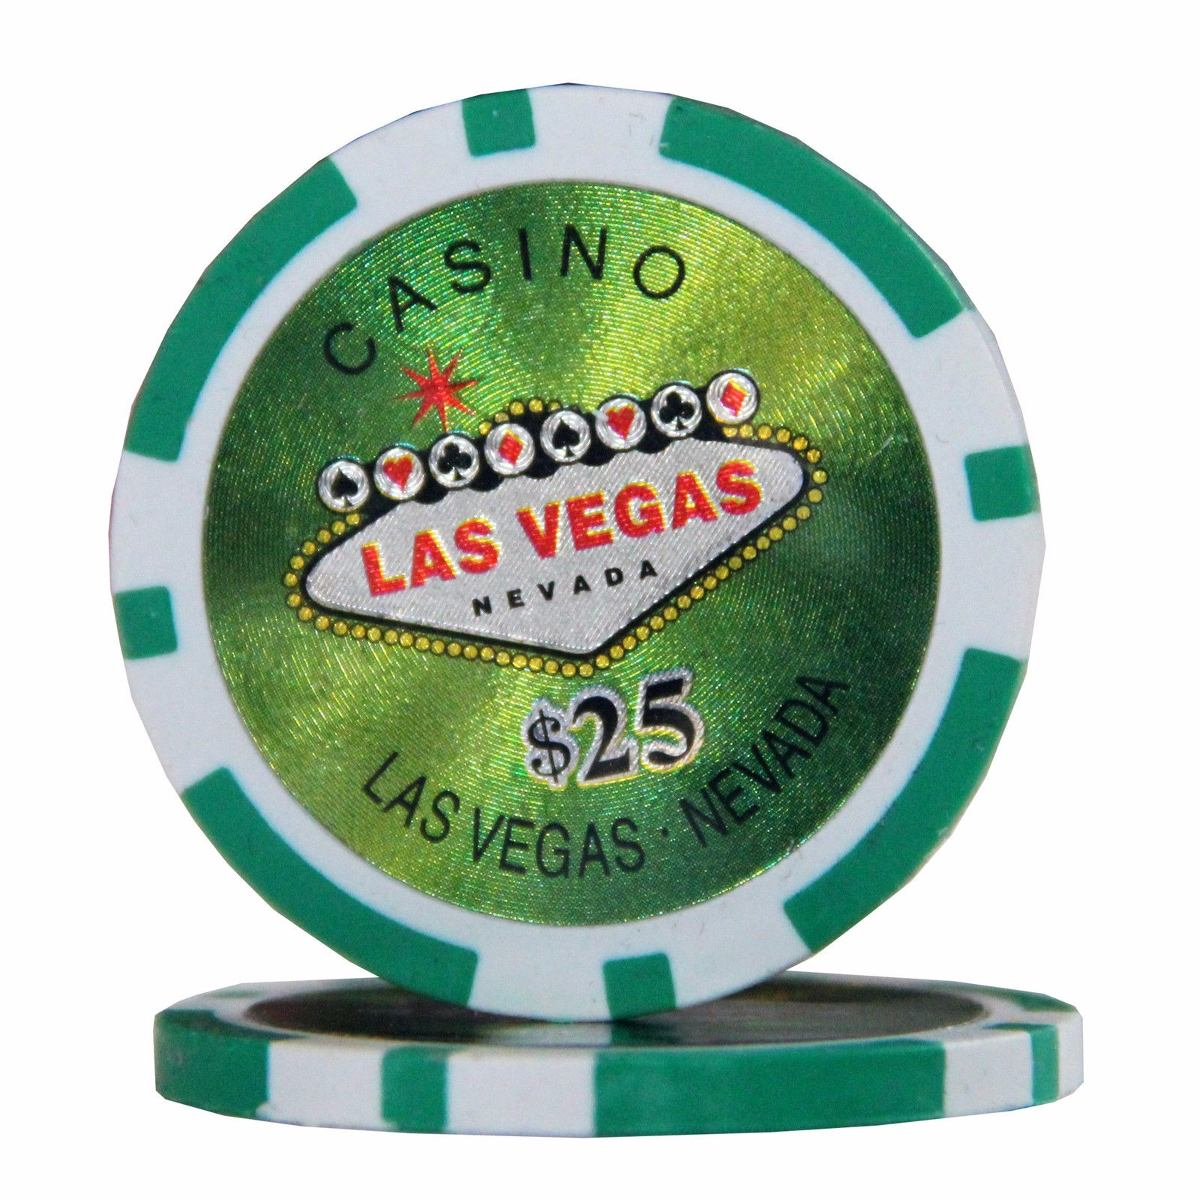 Casino las vegas poker